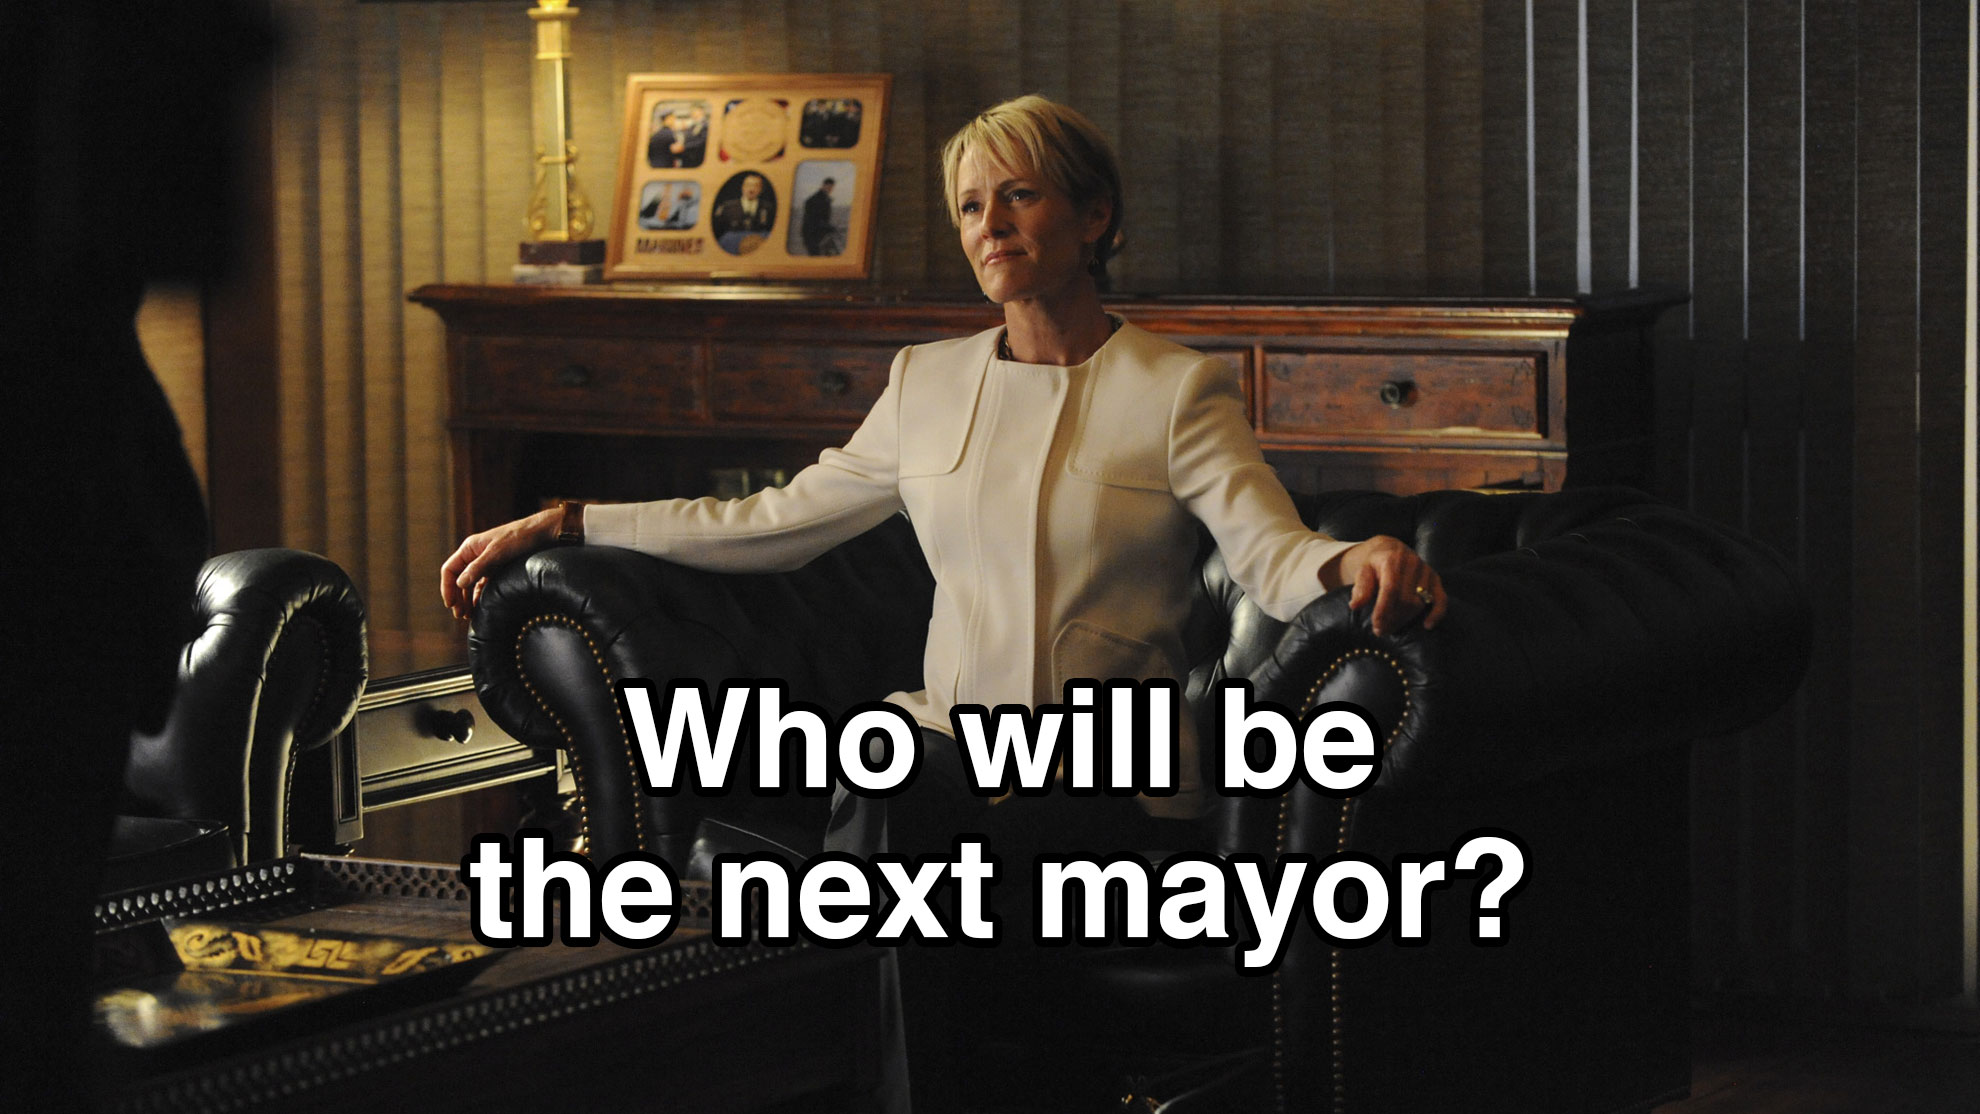 Who will be the next mayor?